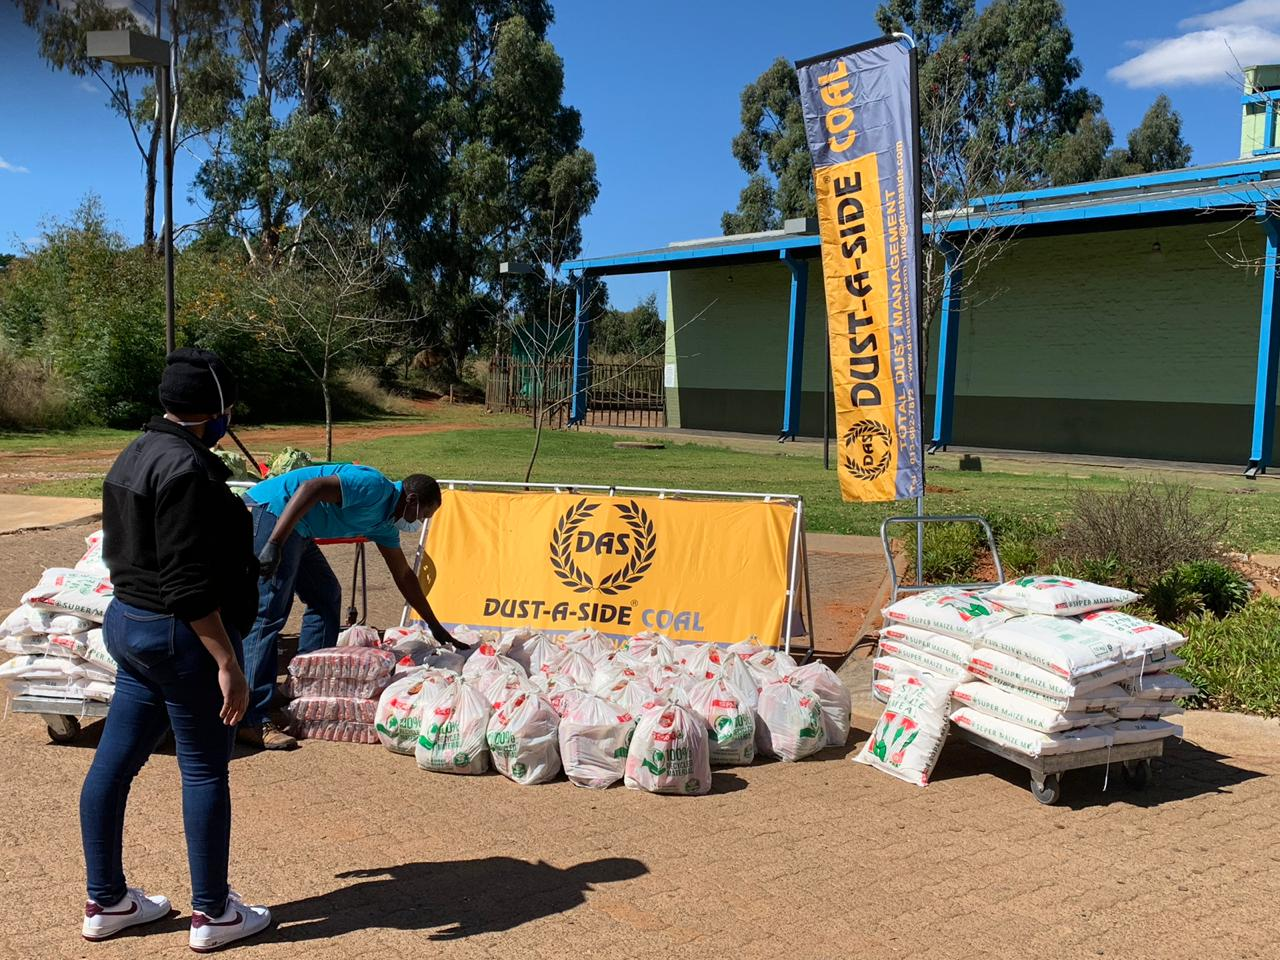 With the impacts of the COVID-19 pandemic continuing to be felt throughout South Africa, Dust-A-Side has taken action to help families in need.